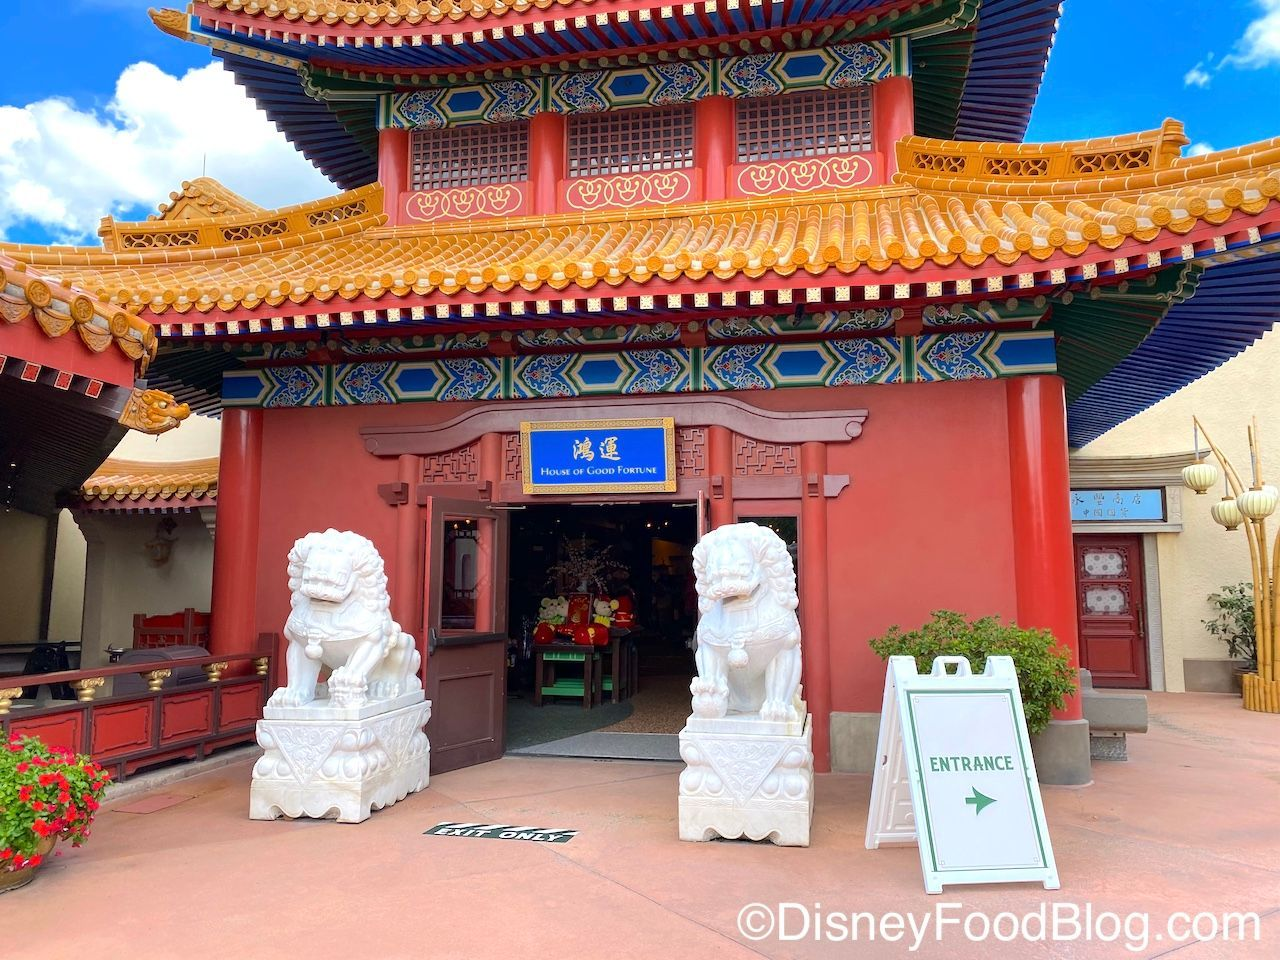 What S New In Epcot A Surprise Closure Epcot Transformation Additions And More The Disney Food Blog In 2020 Disney Food Blog Disney Food Recipe For Mom